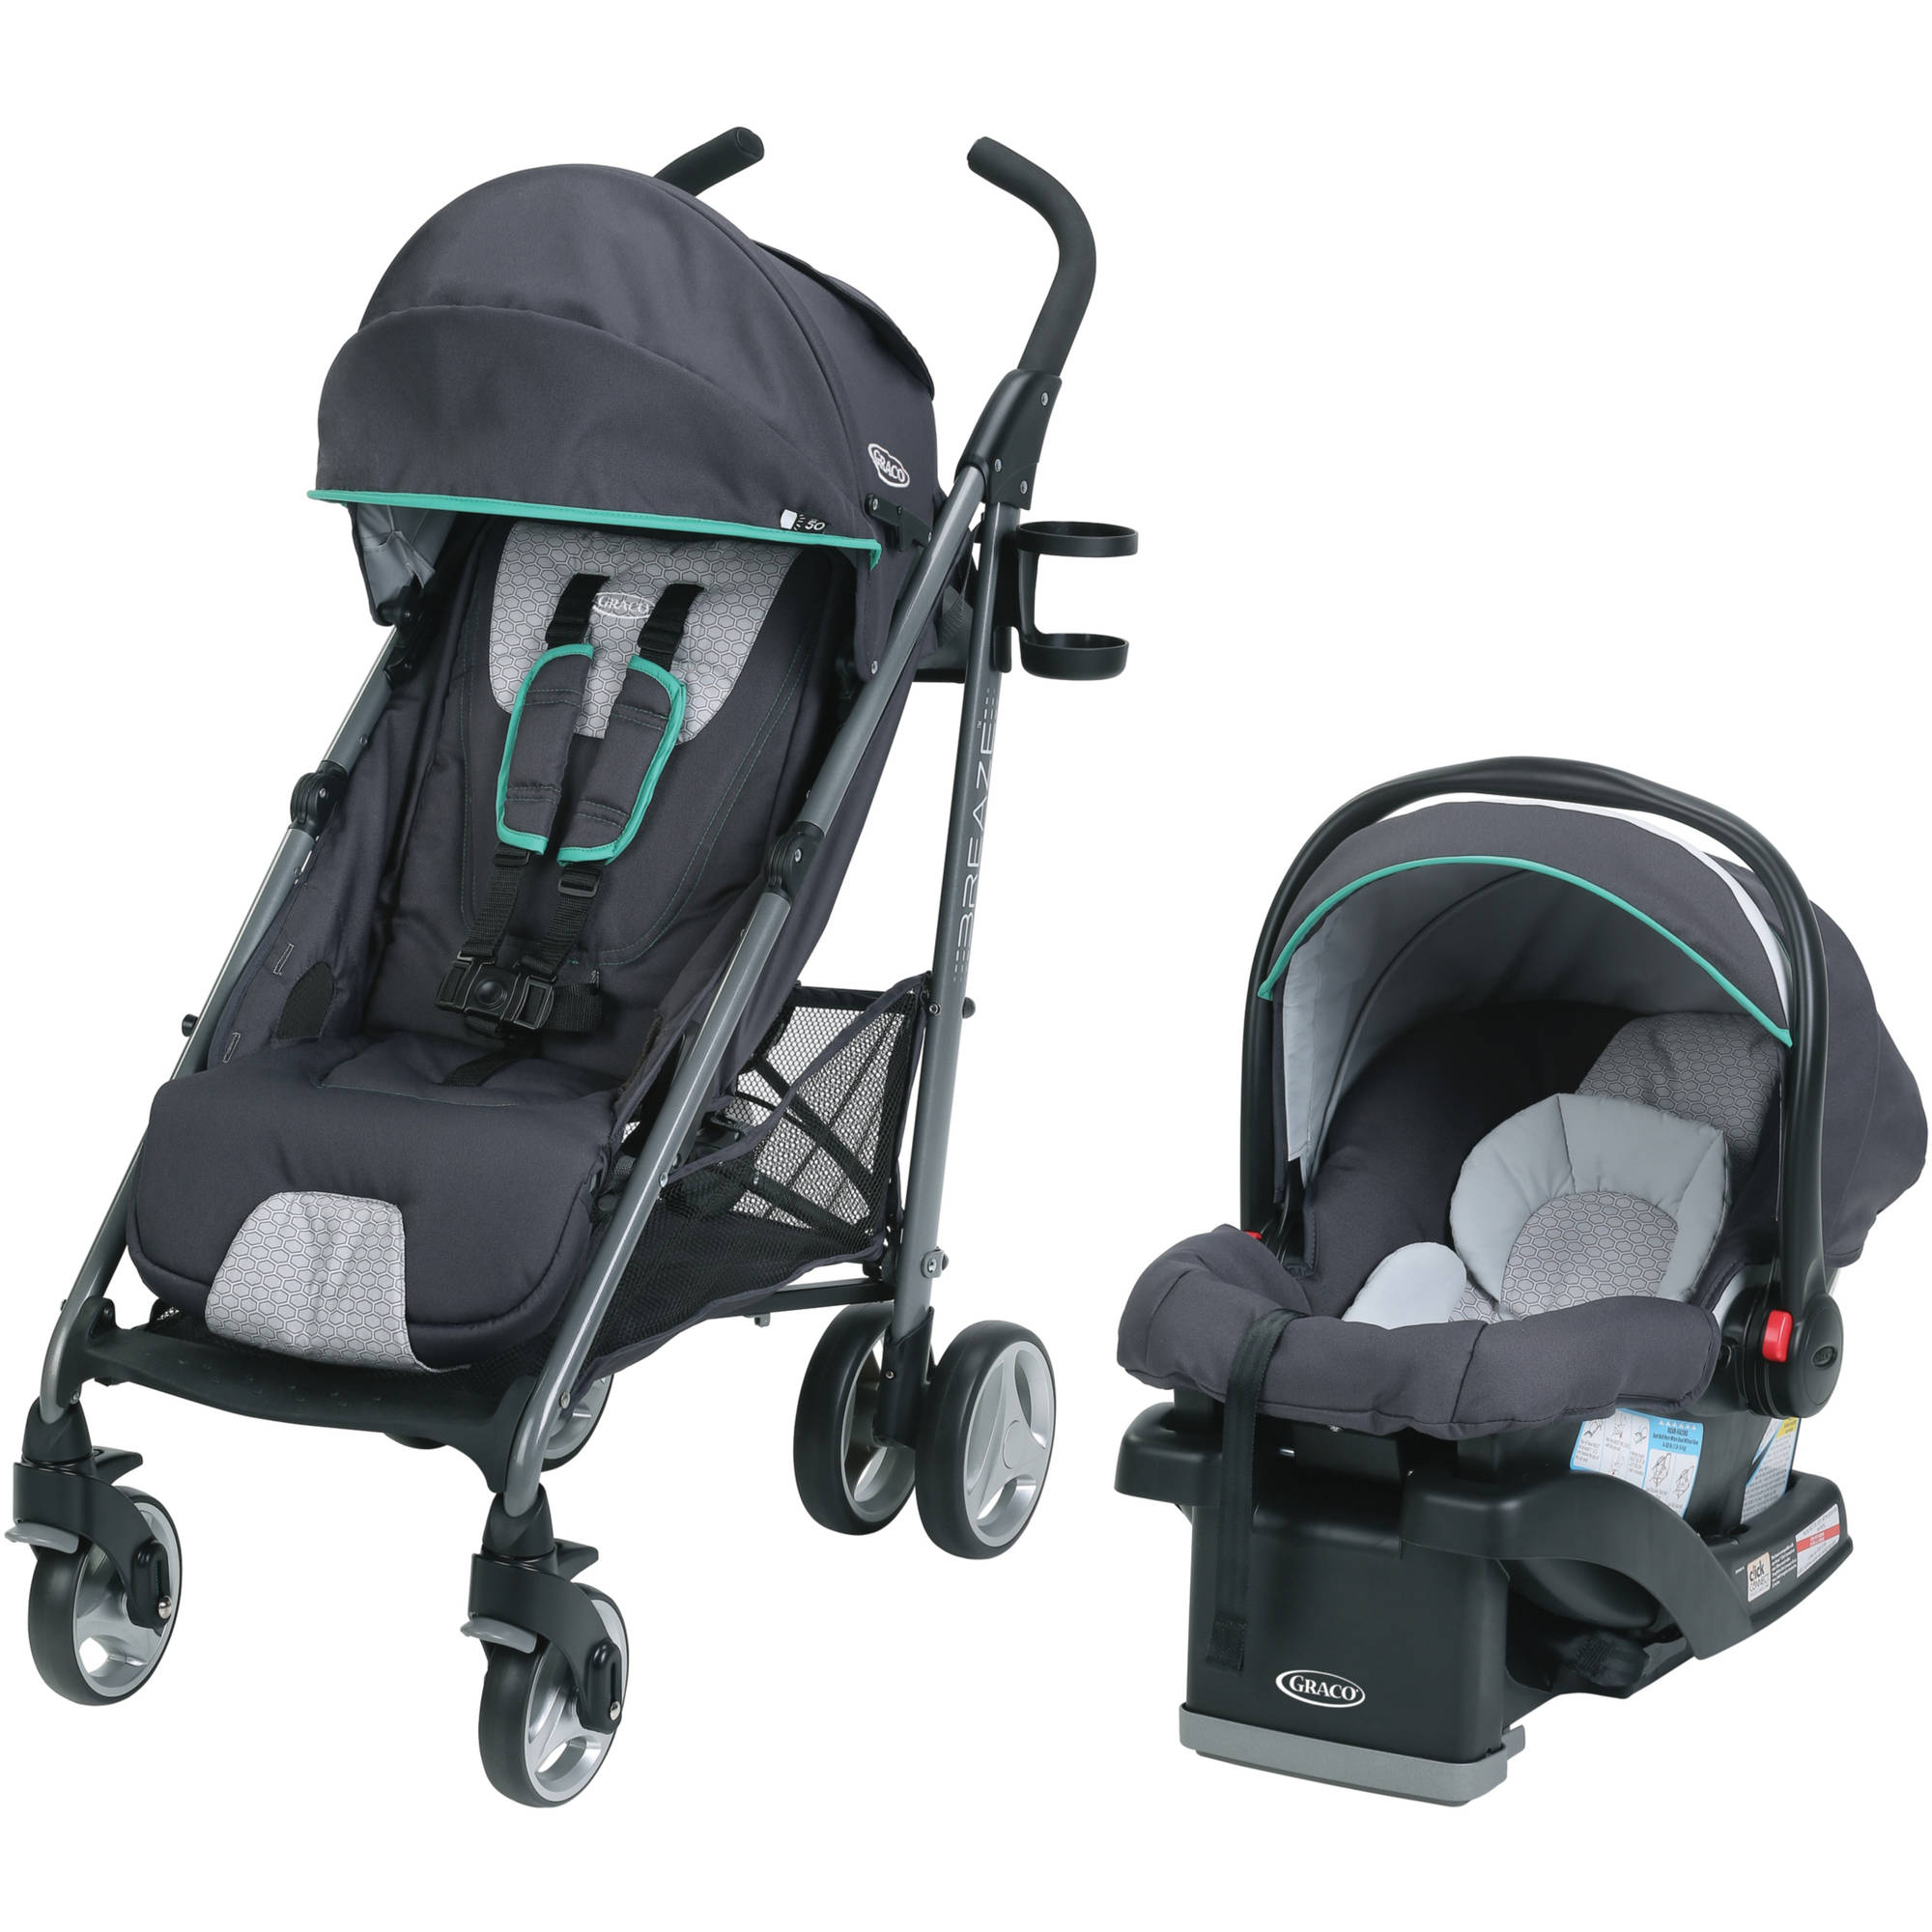 Graco Breaze Travel System Stroller with SnugRide Click Connect 35 Infant Car Seat, Basin